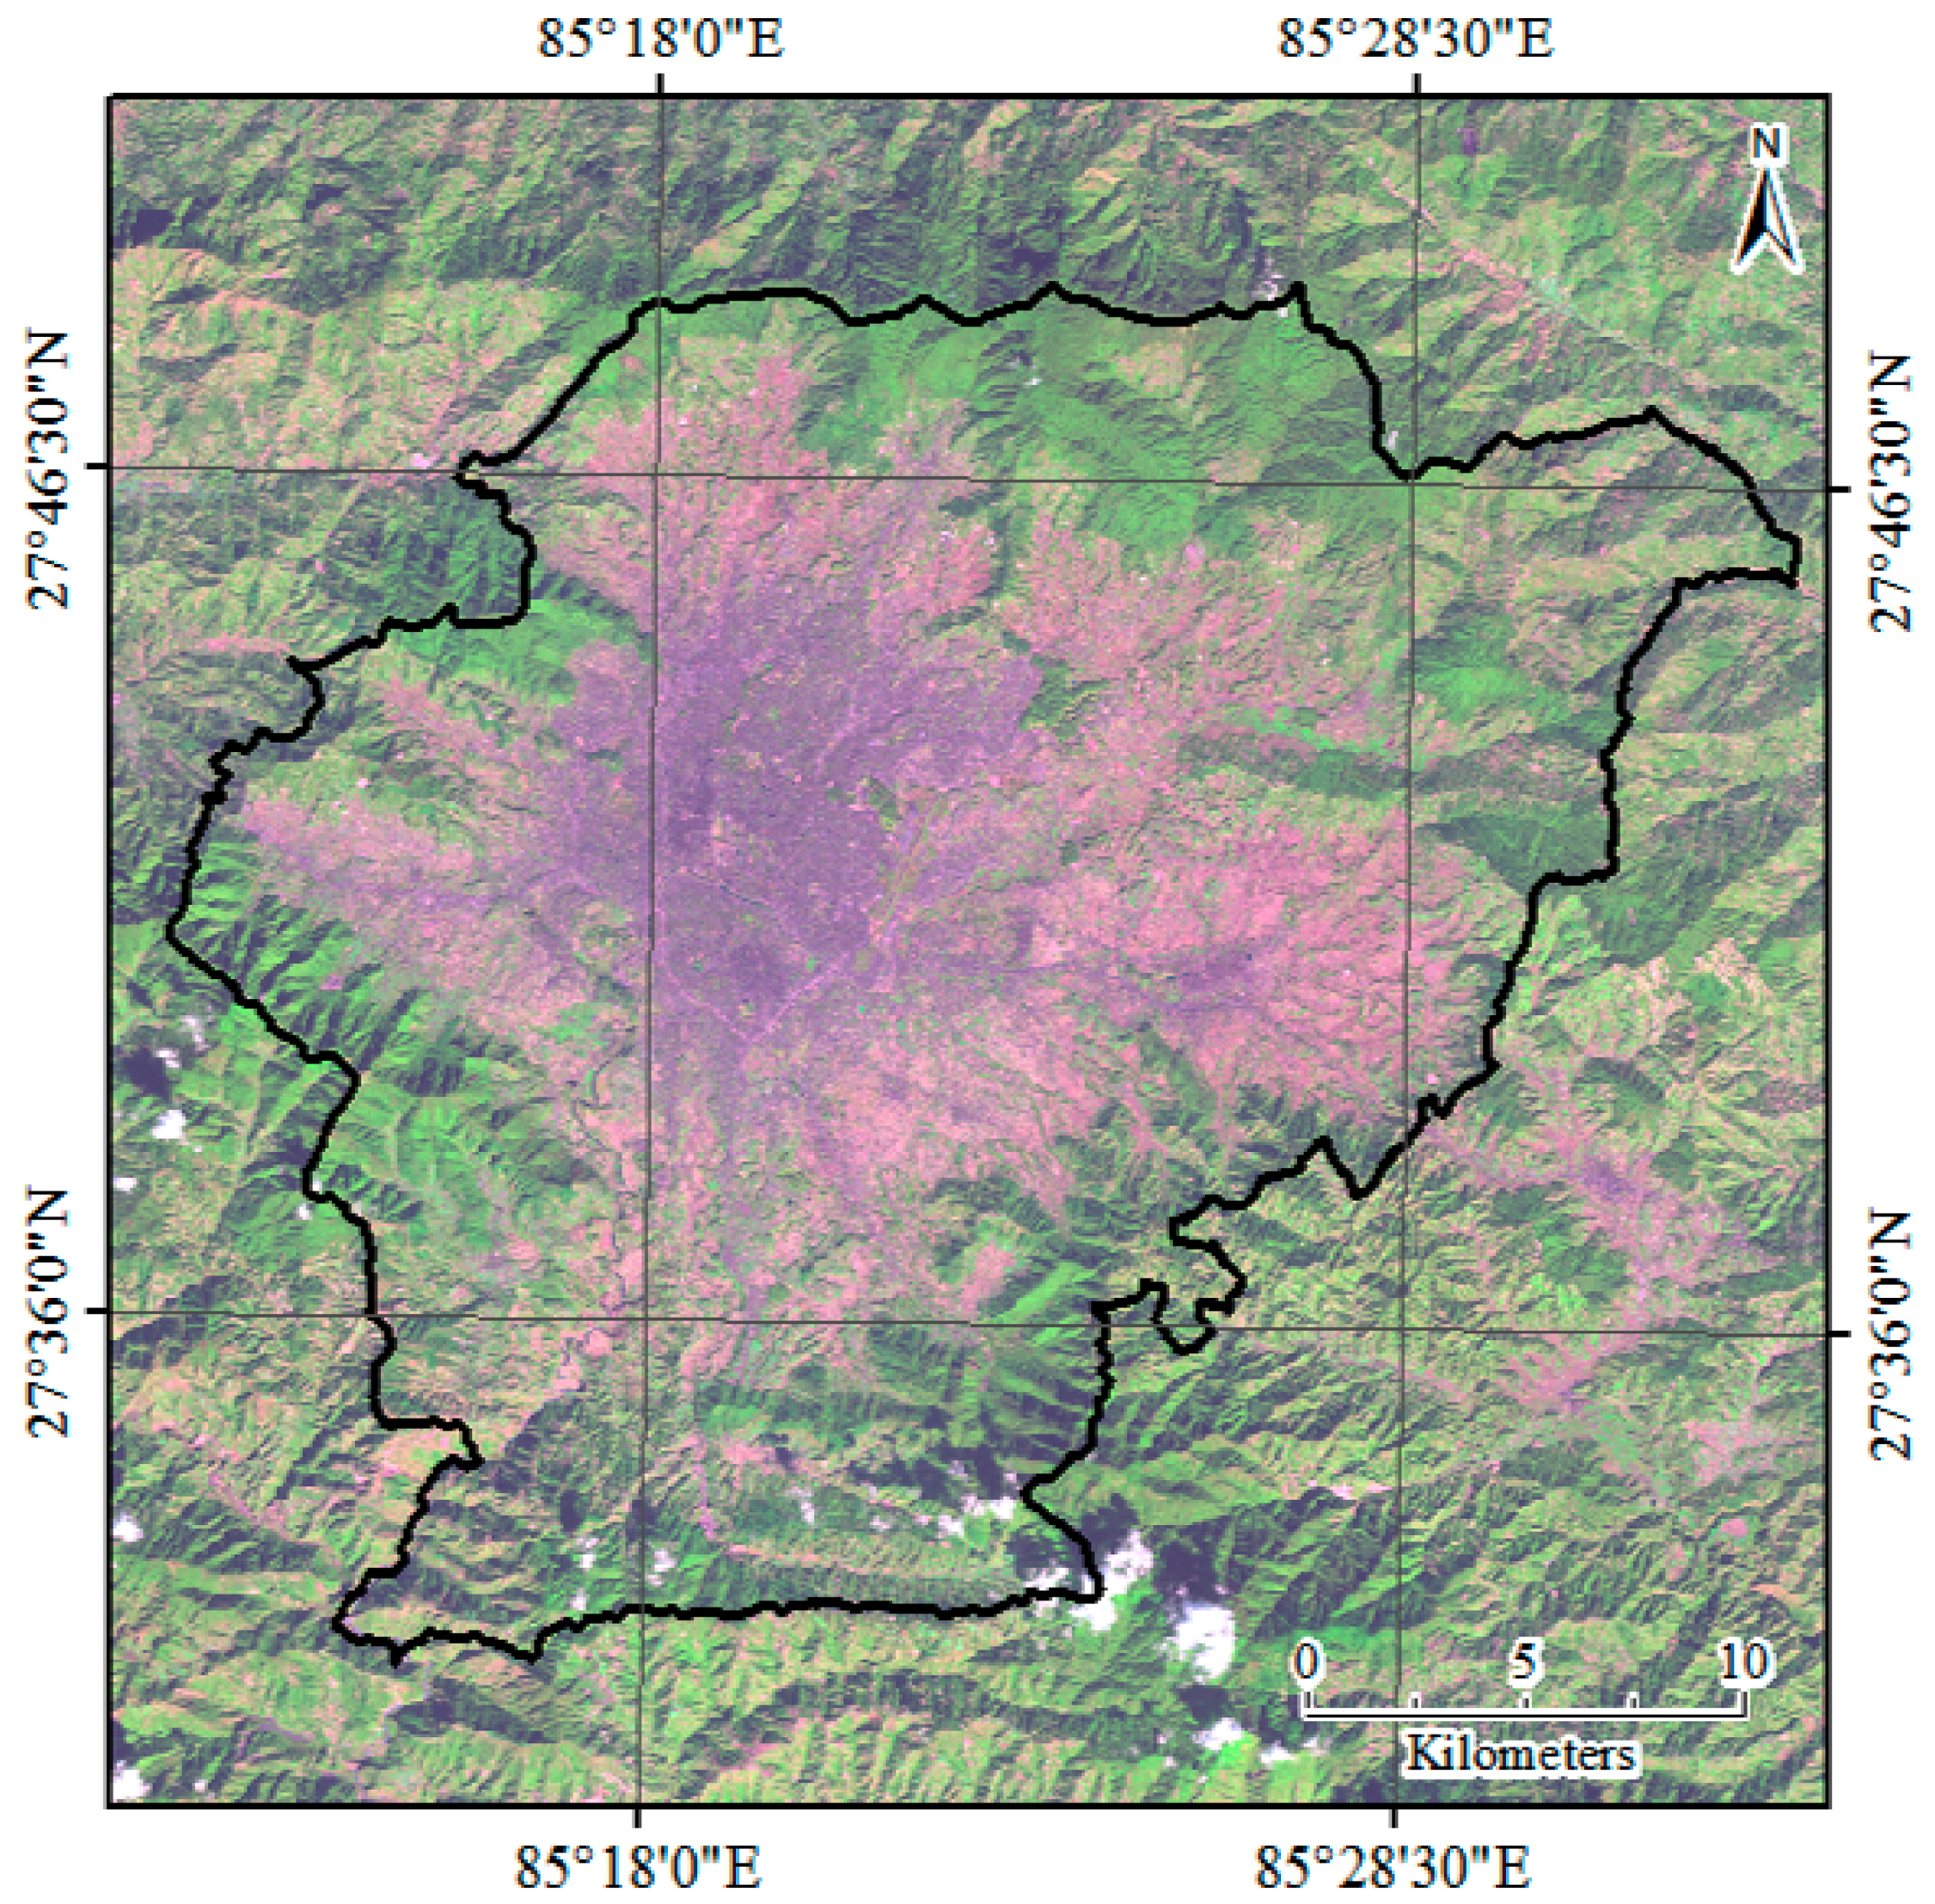 Land | Free Full-Text | Detection of Land Subsidence in ... Google Map Of Kathmandu Valley on google map of northeastern united states, google map of baltimore area, google map of anuradhapura, google map of bali, google map of asia, google map of atlanta area, google map of greater boston area, google map of dc area, google map of everest, google map of nepal,